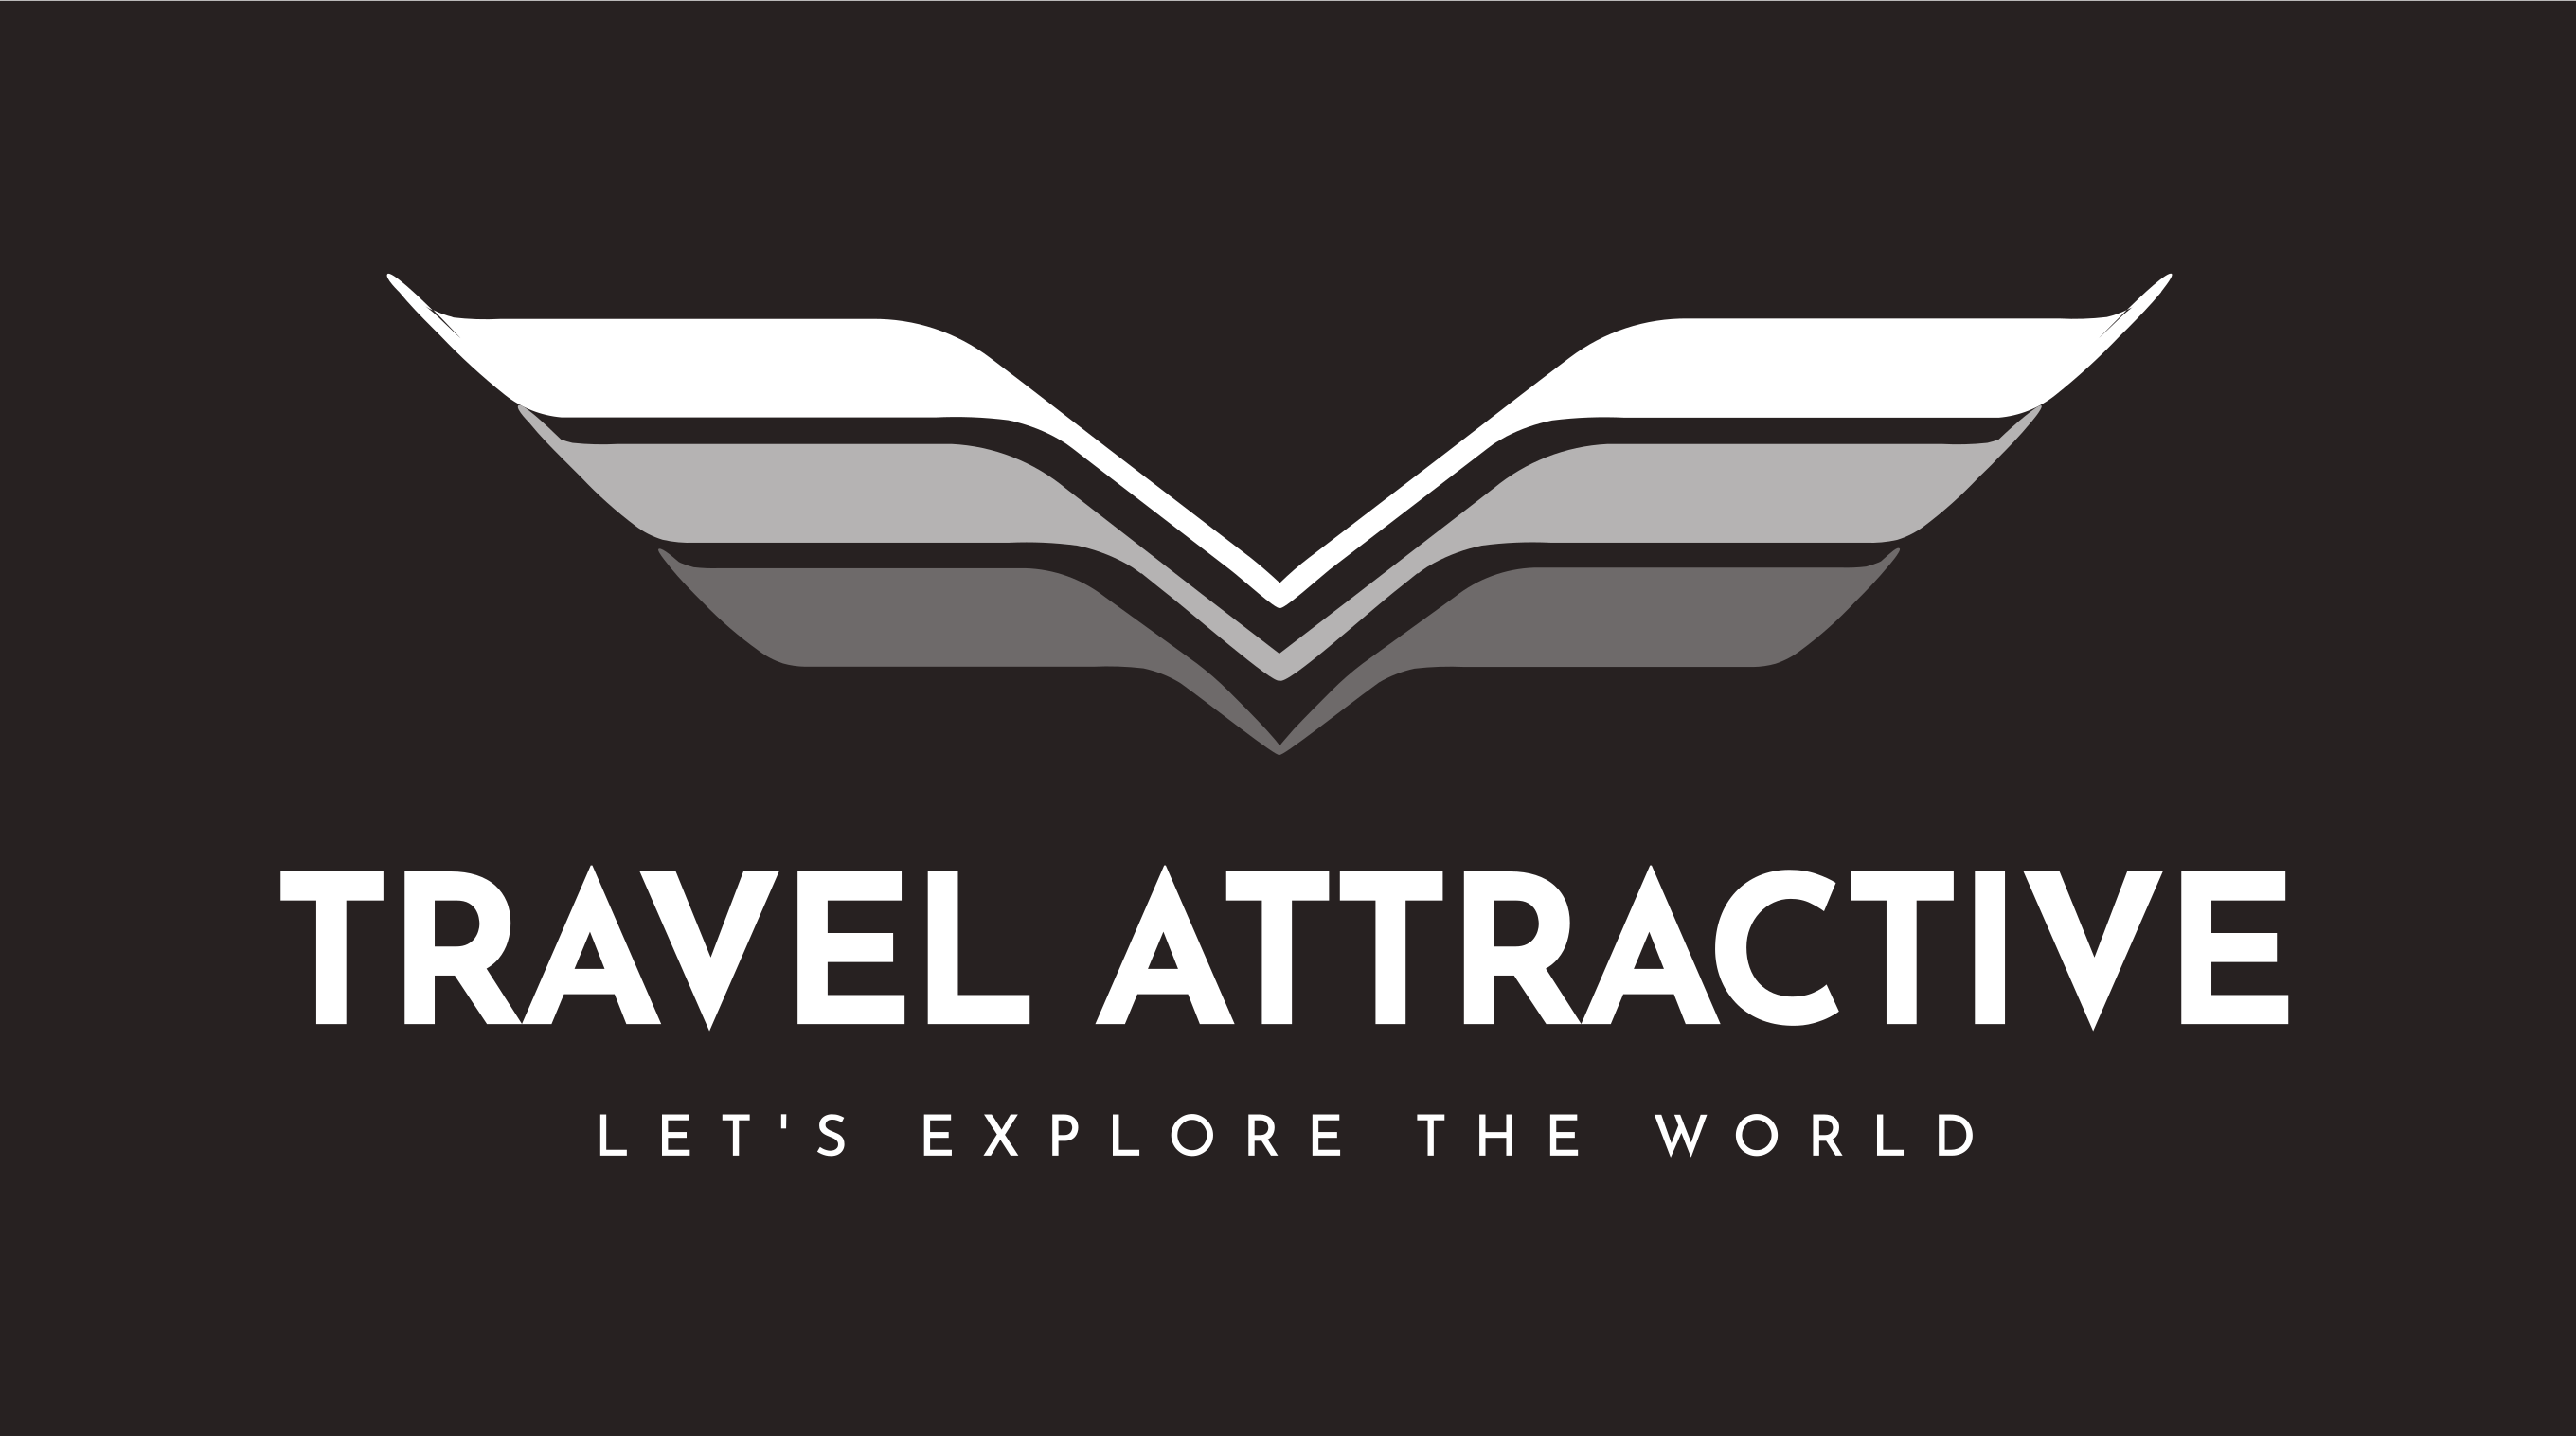 Travel Attractive